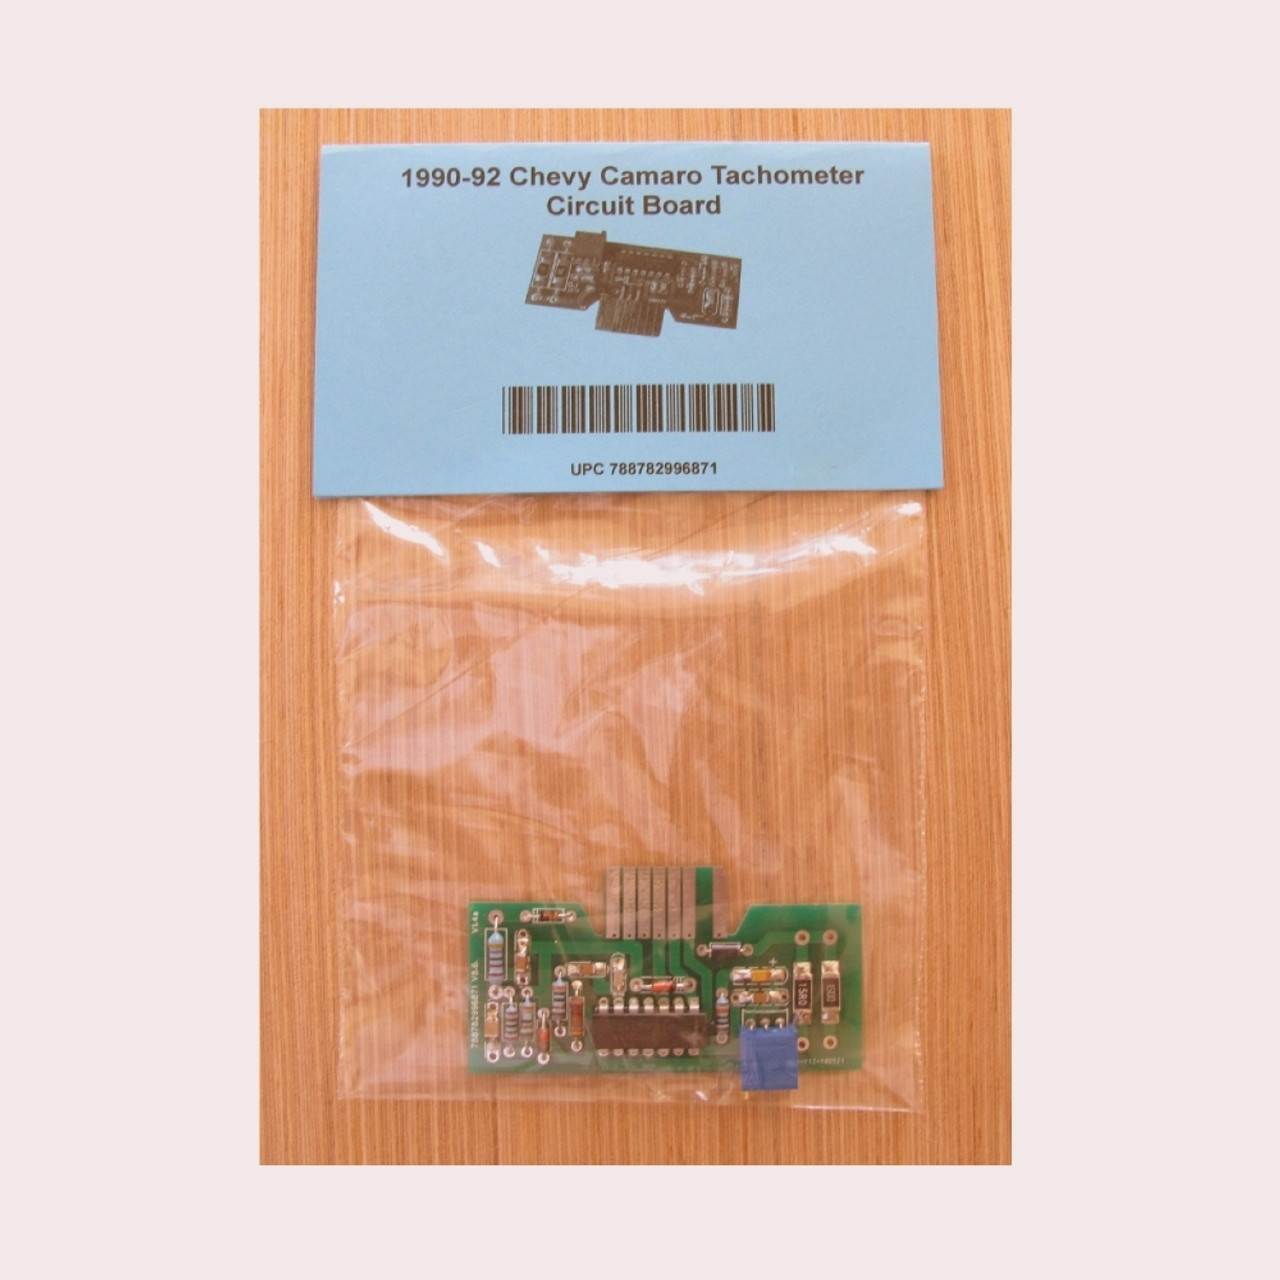 1990-92 Chevy Camaro V8 Tachometer Circuit Board.  LED. Pre-Calibrated. Direct replacement